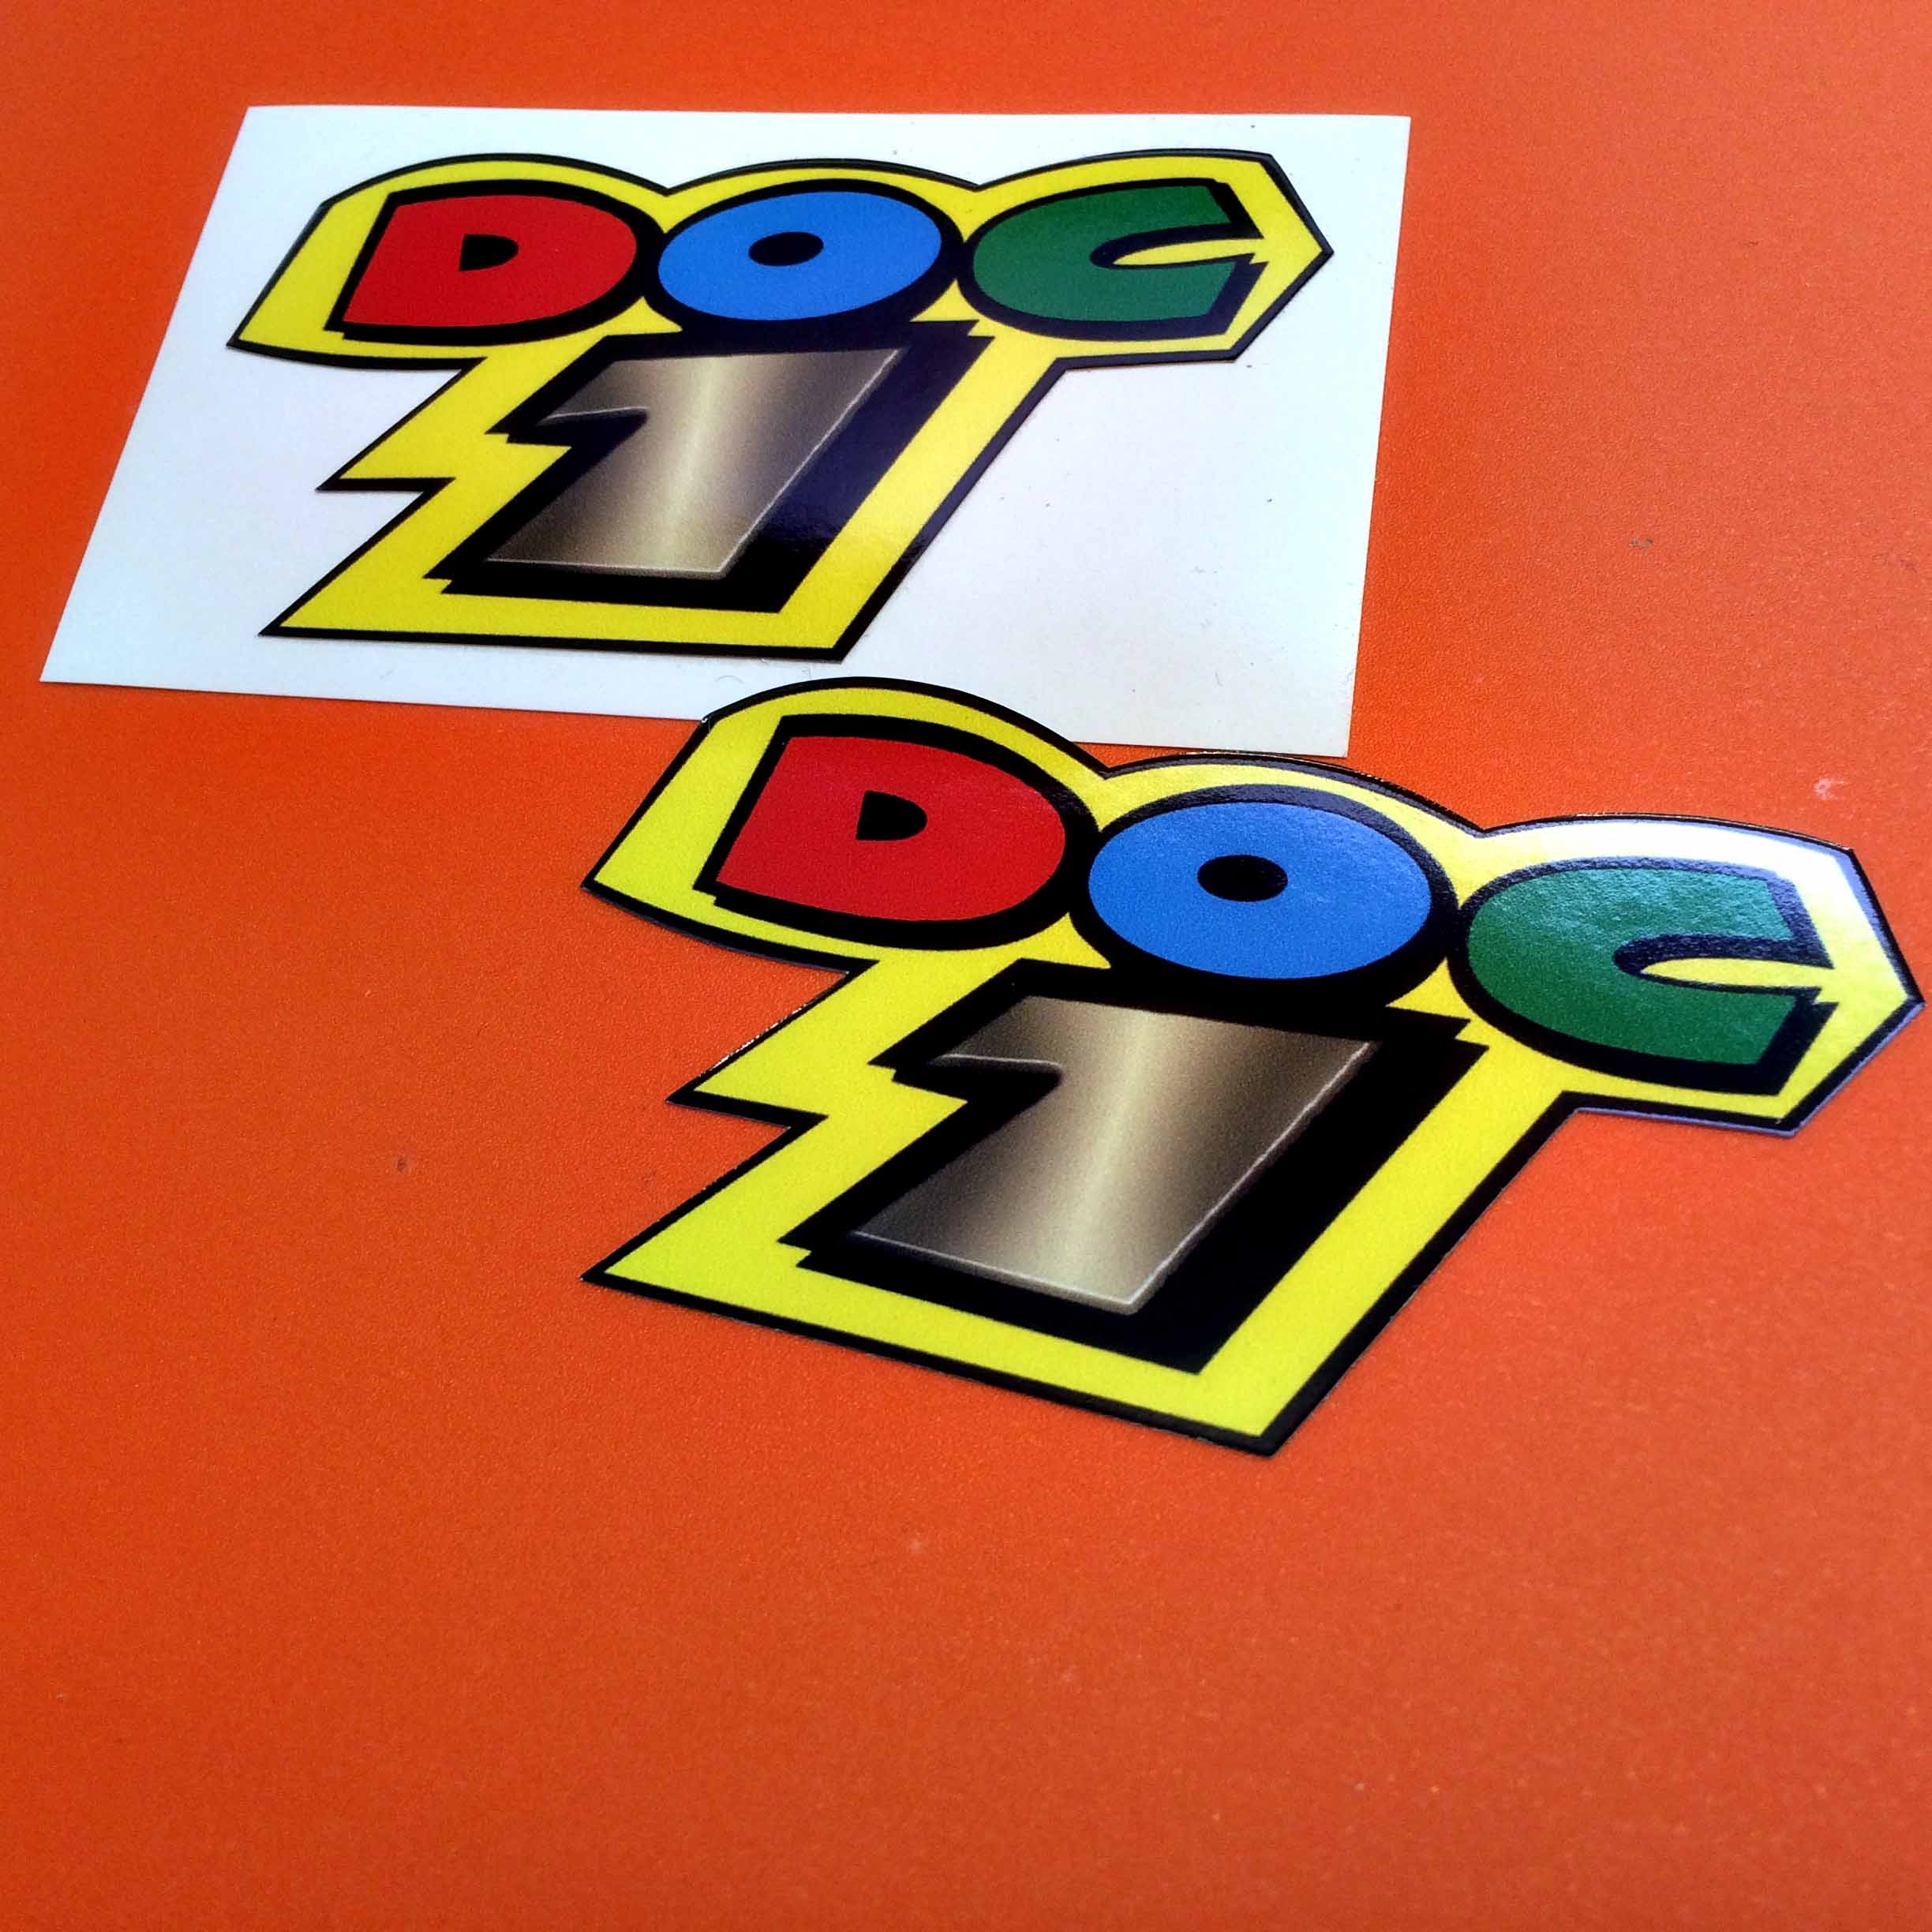 Bold capital letters. D is red, O blue and C is green. Underneath is the number 1 in grey. All characters sit on a yellow background.